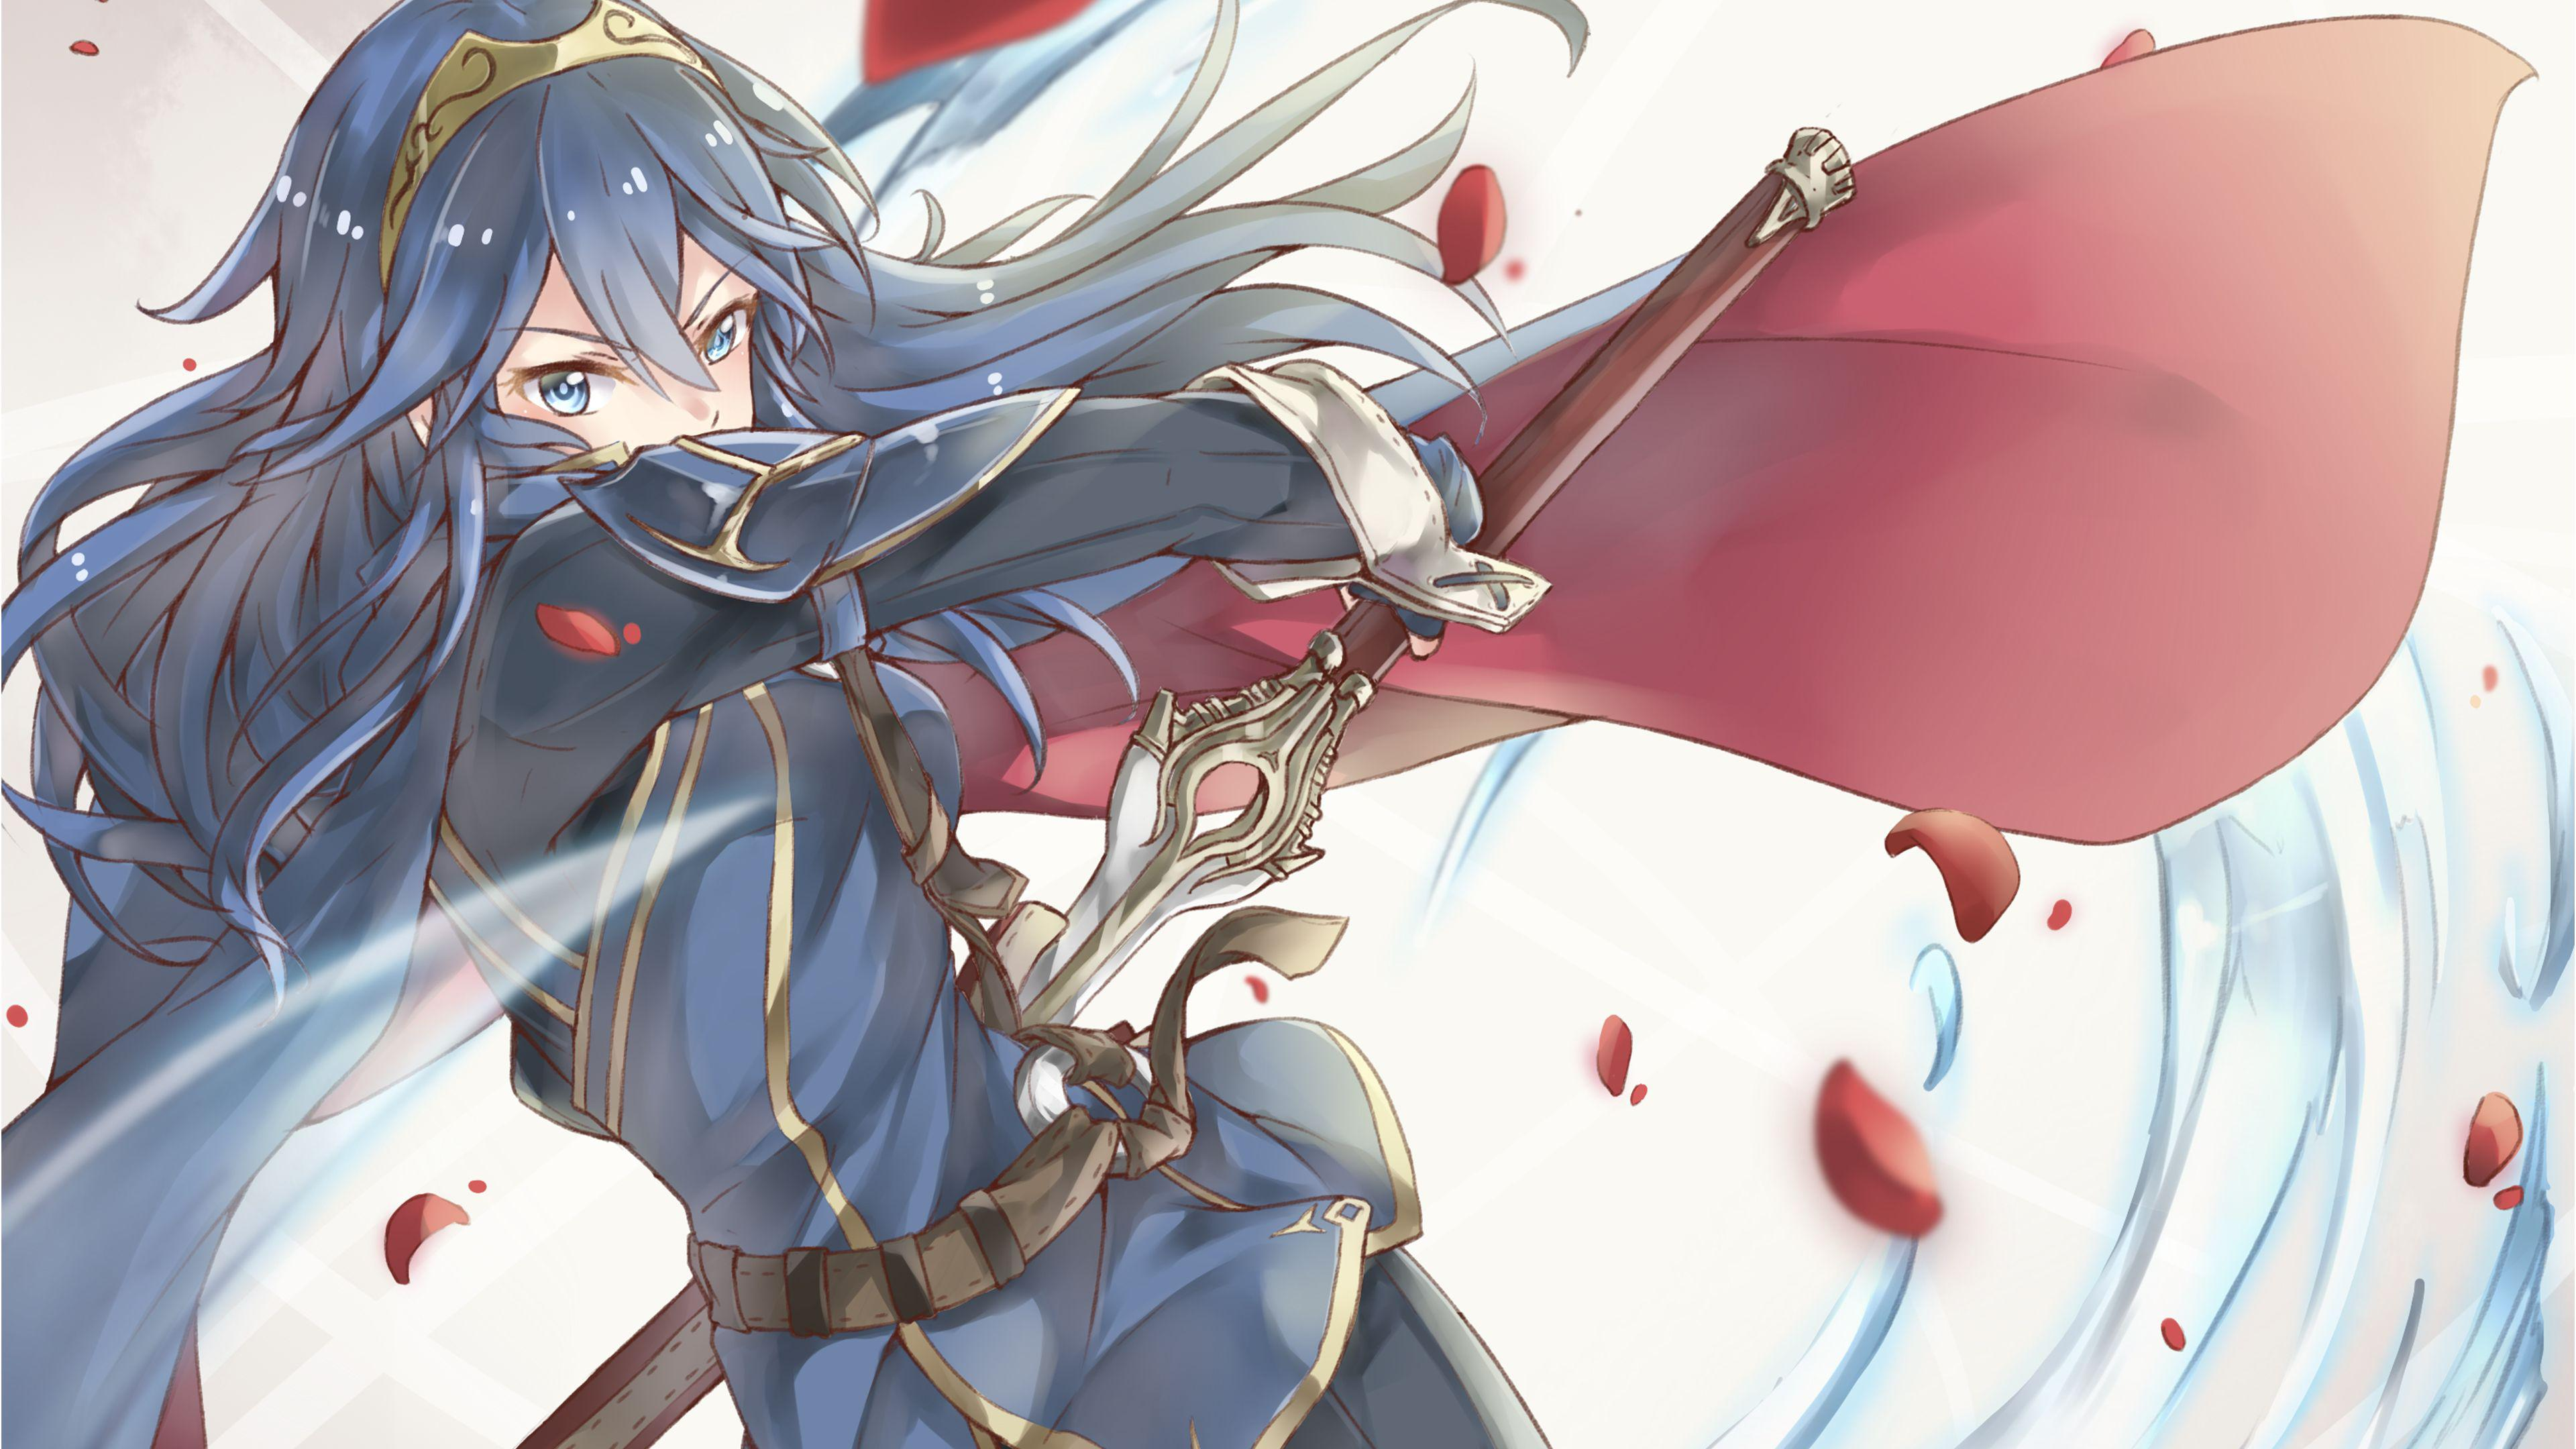 Marth Background x Fire Emblem Ike Wallpapers